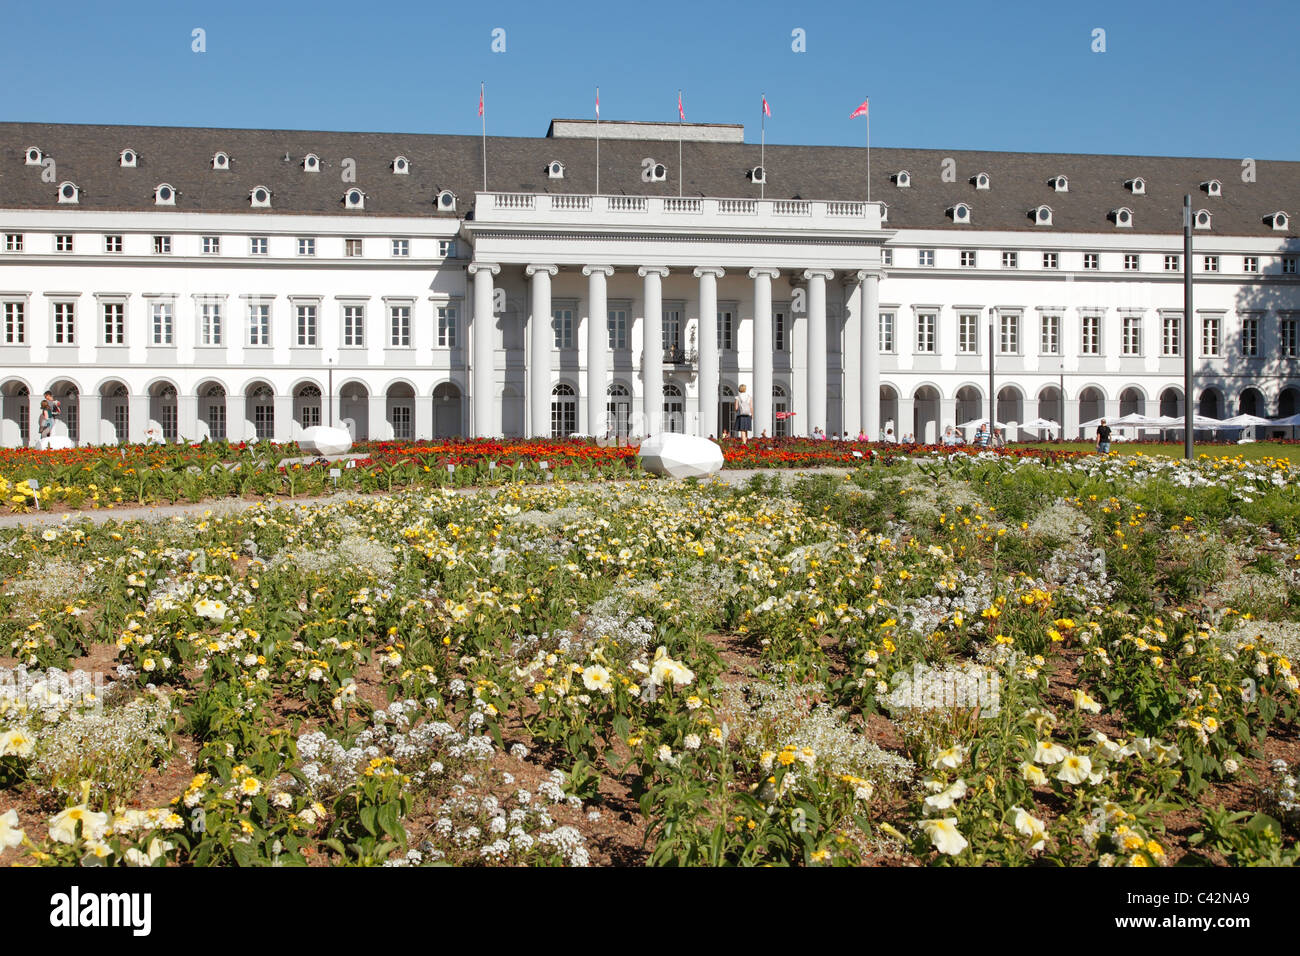 palace of the prince electors of trier in koblenz germany stock photo royalty free image. Black Bedroom Furniture Sets. Home Design Ideas